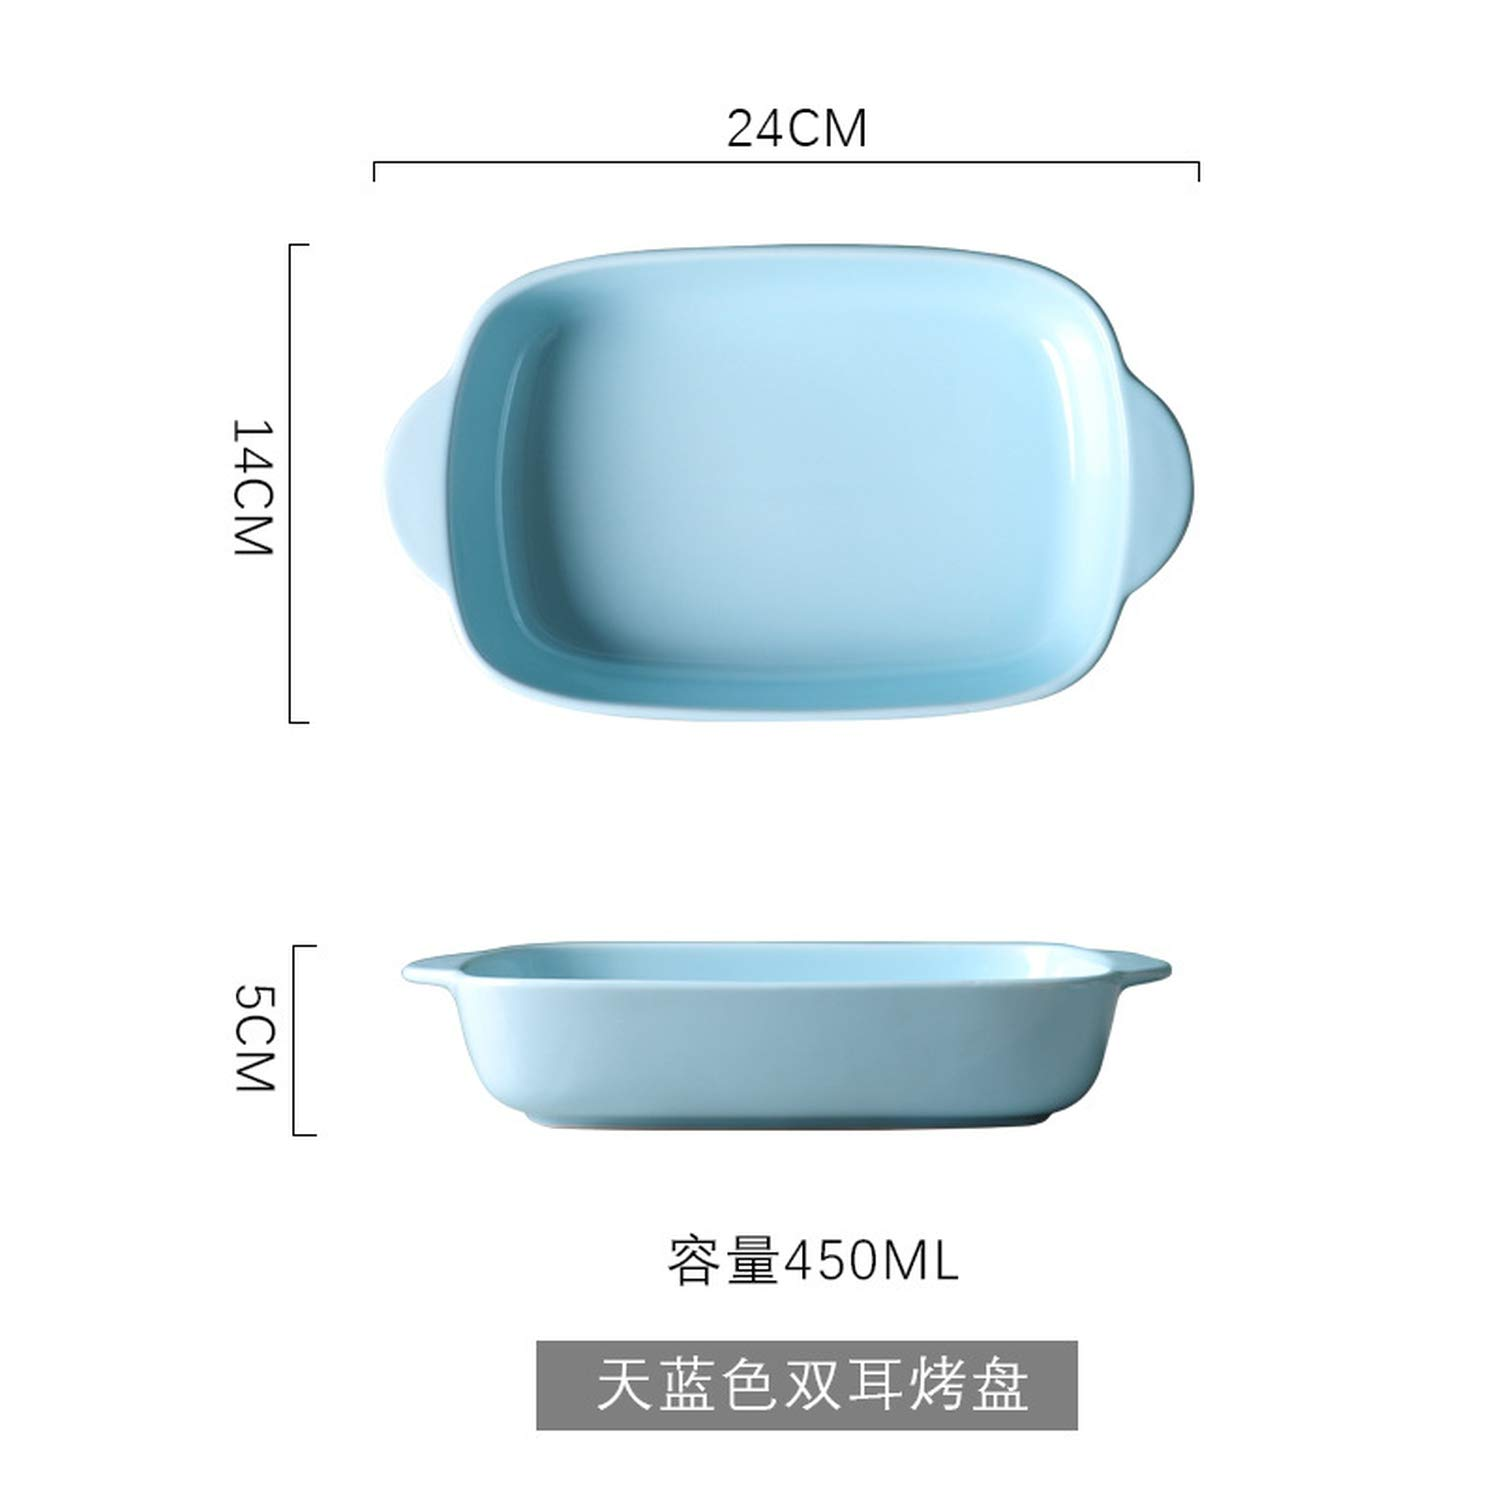 Cheese Baking Dish Microwave Oven Plate Ceramic Oven Tableware Creative Dishes Home Baking Bowl Cutlery,blue